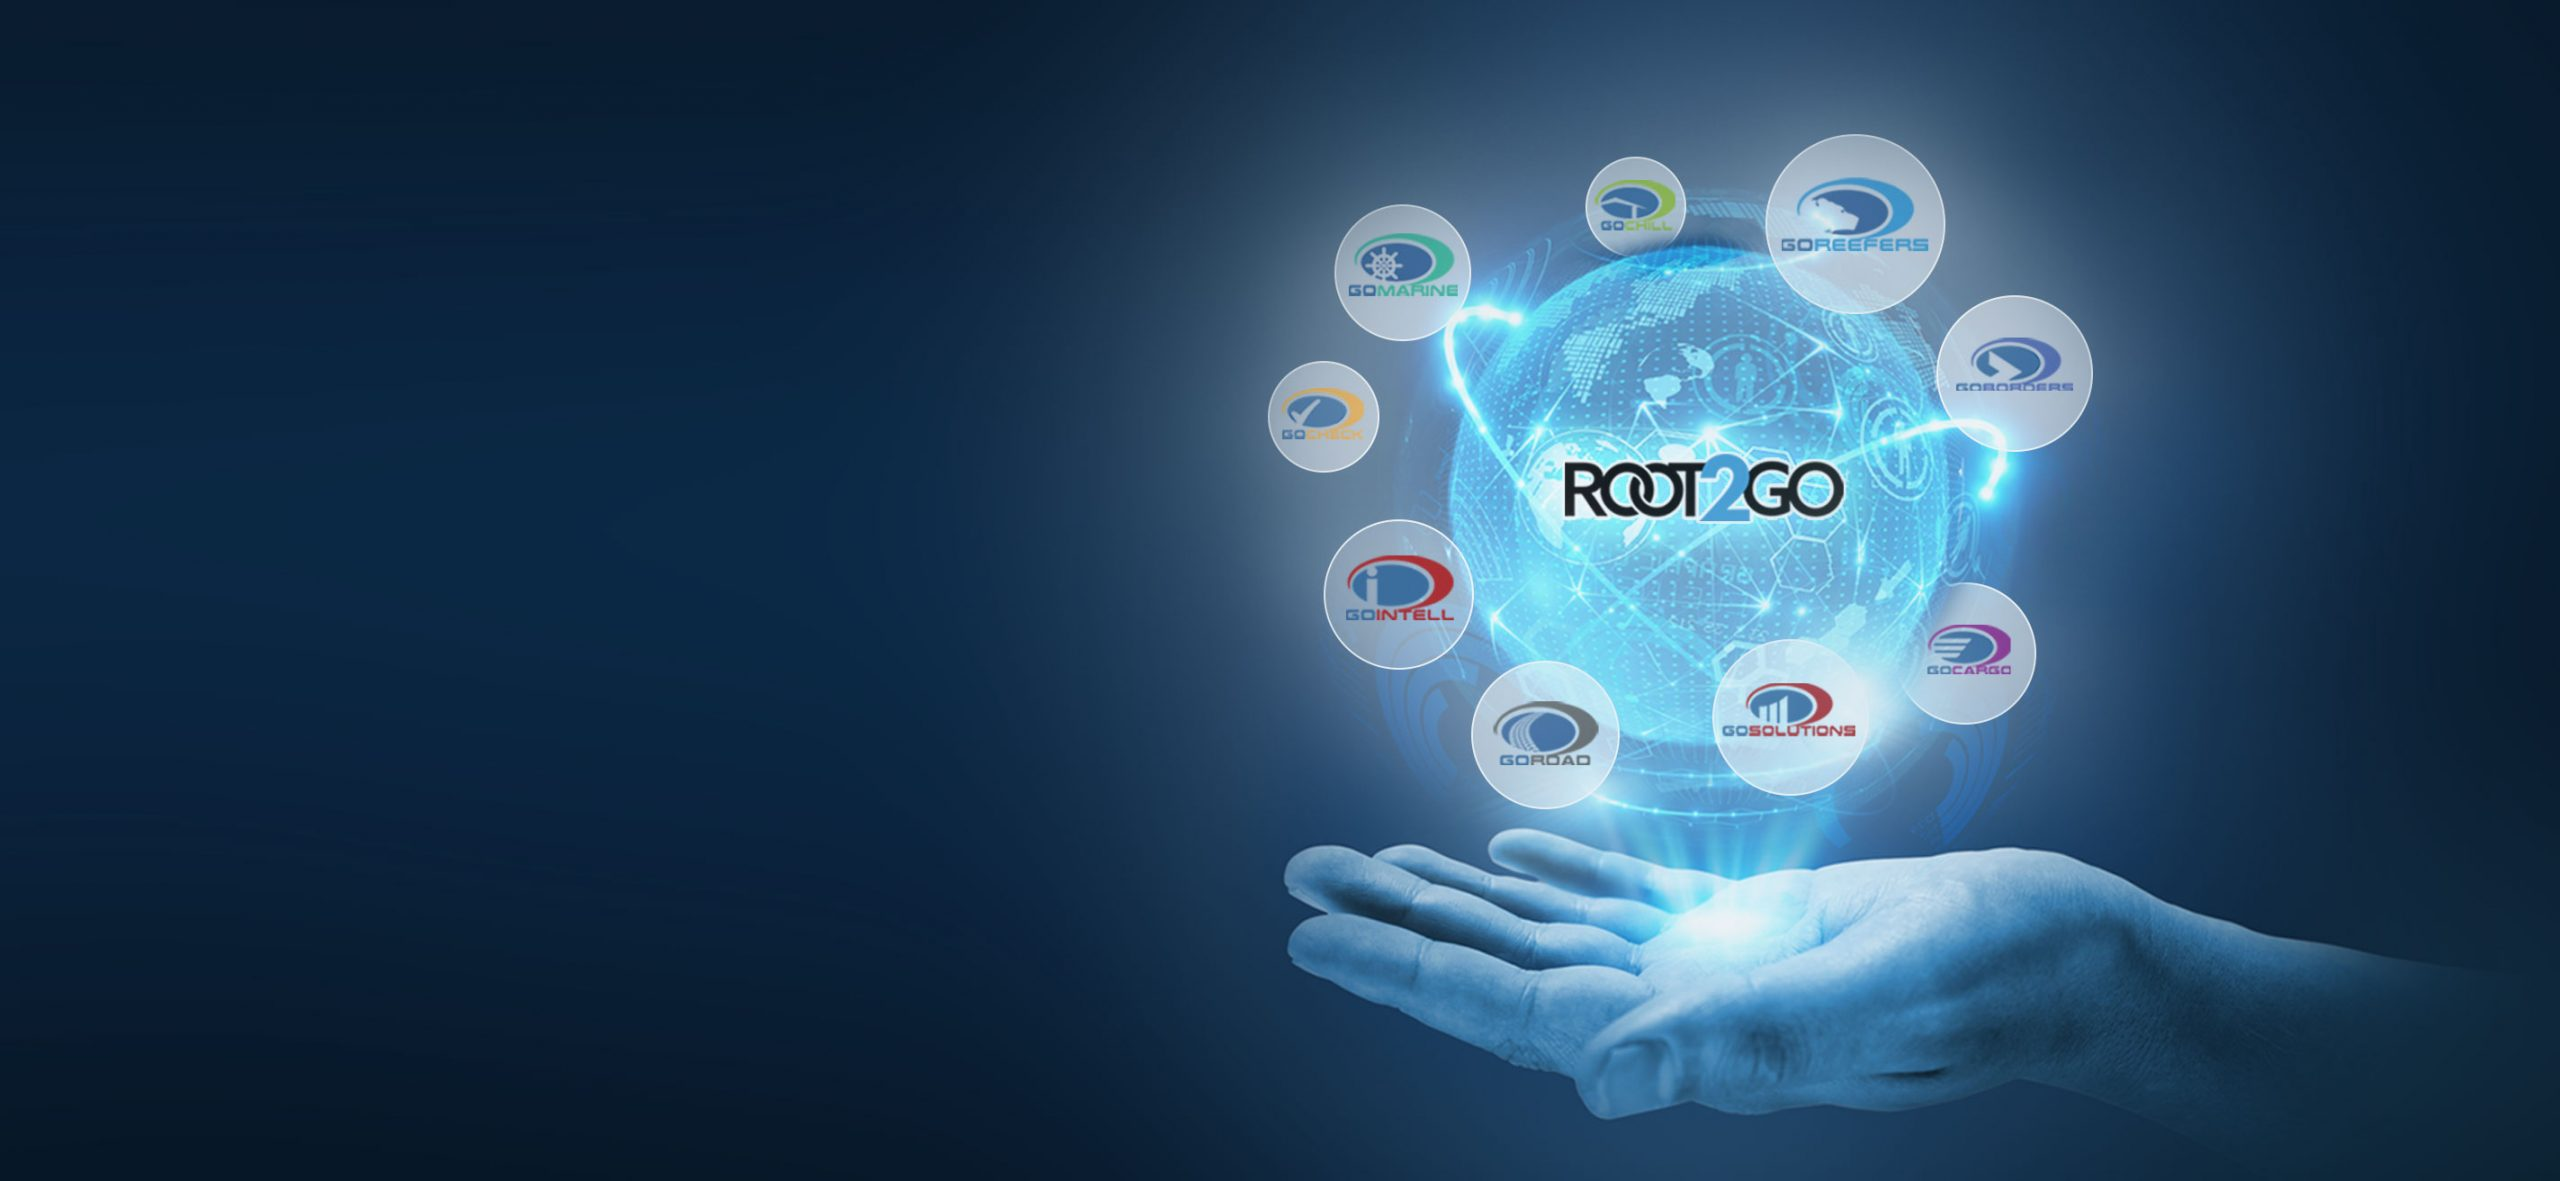 GoGlobal - Root2Go